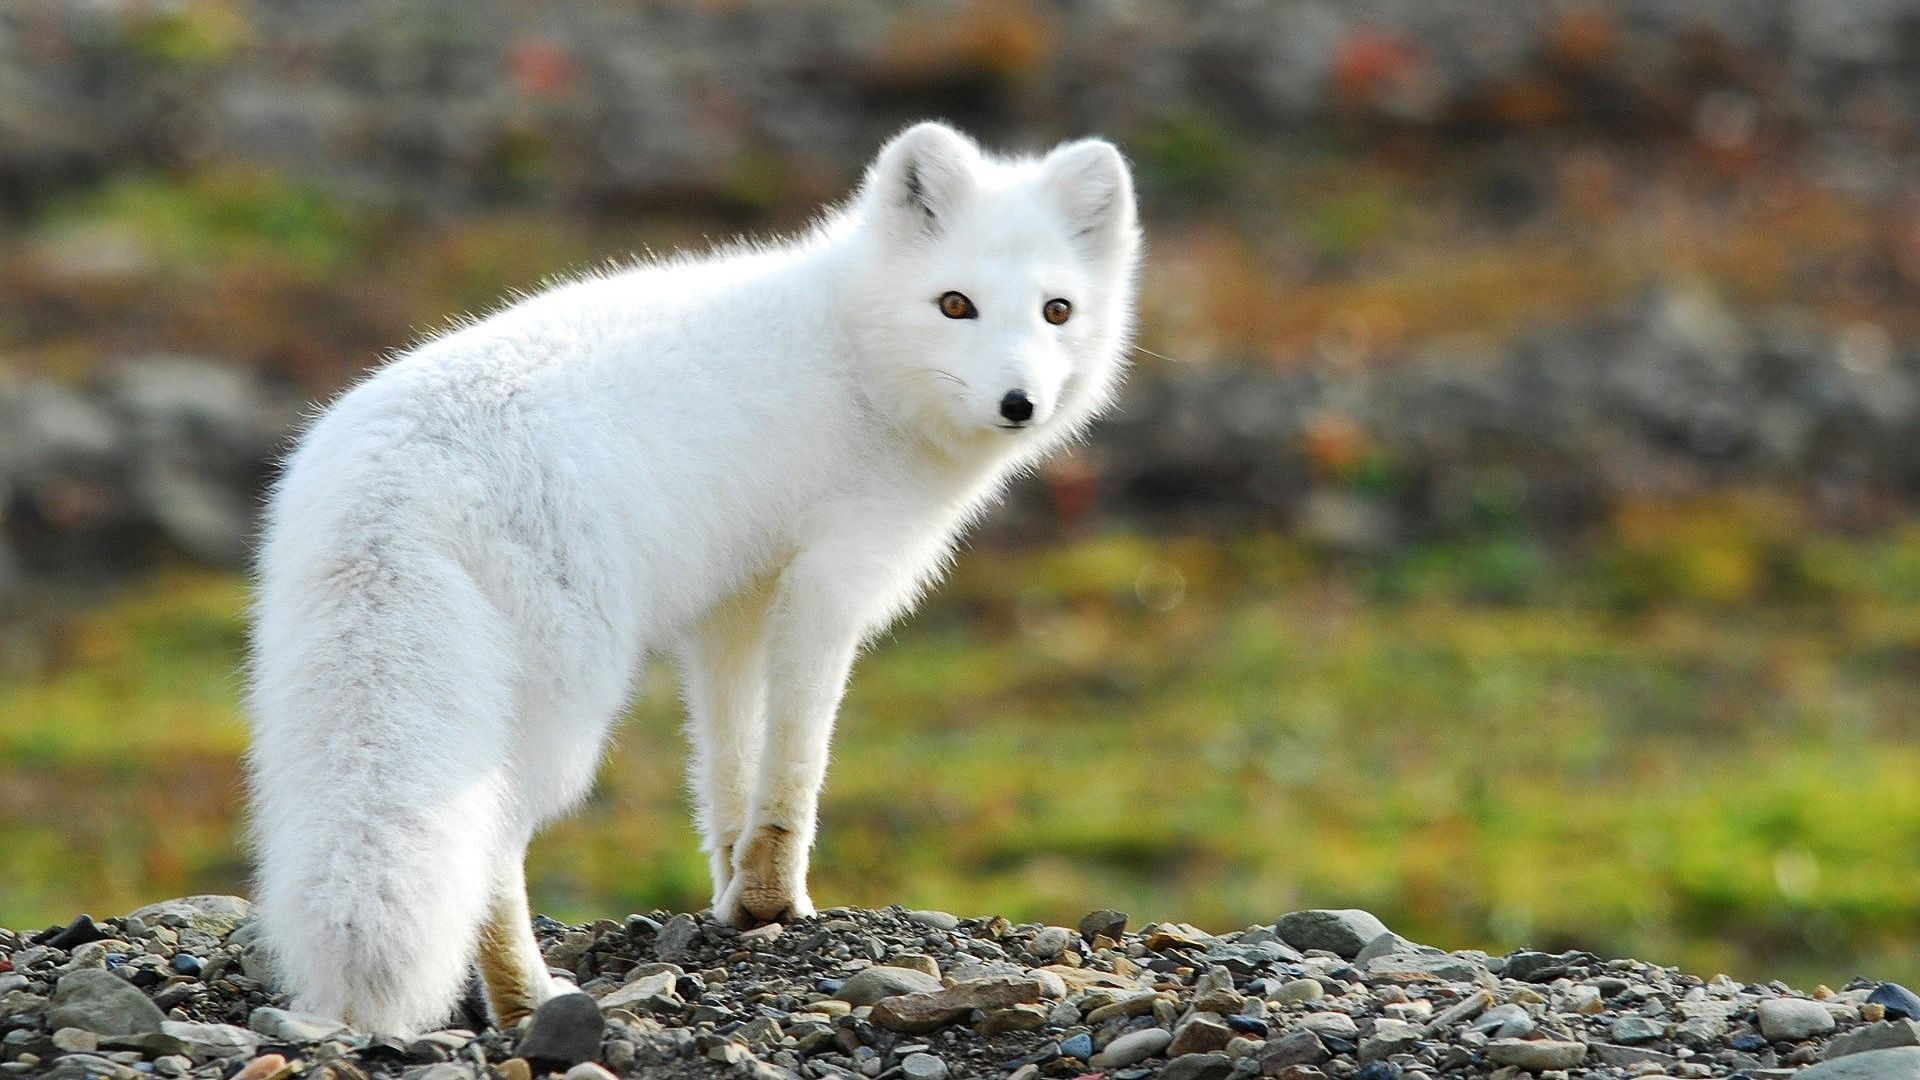 a free essay on the arctic fox Adopt an animal adopt an arctic fox kits make great gifts and can be sent directly to the recipient simply supply the recipient's name and mailing address as shipping information we'll even include a letter stating the adopt an arctic fox is from you.